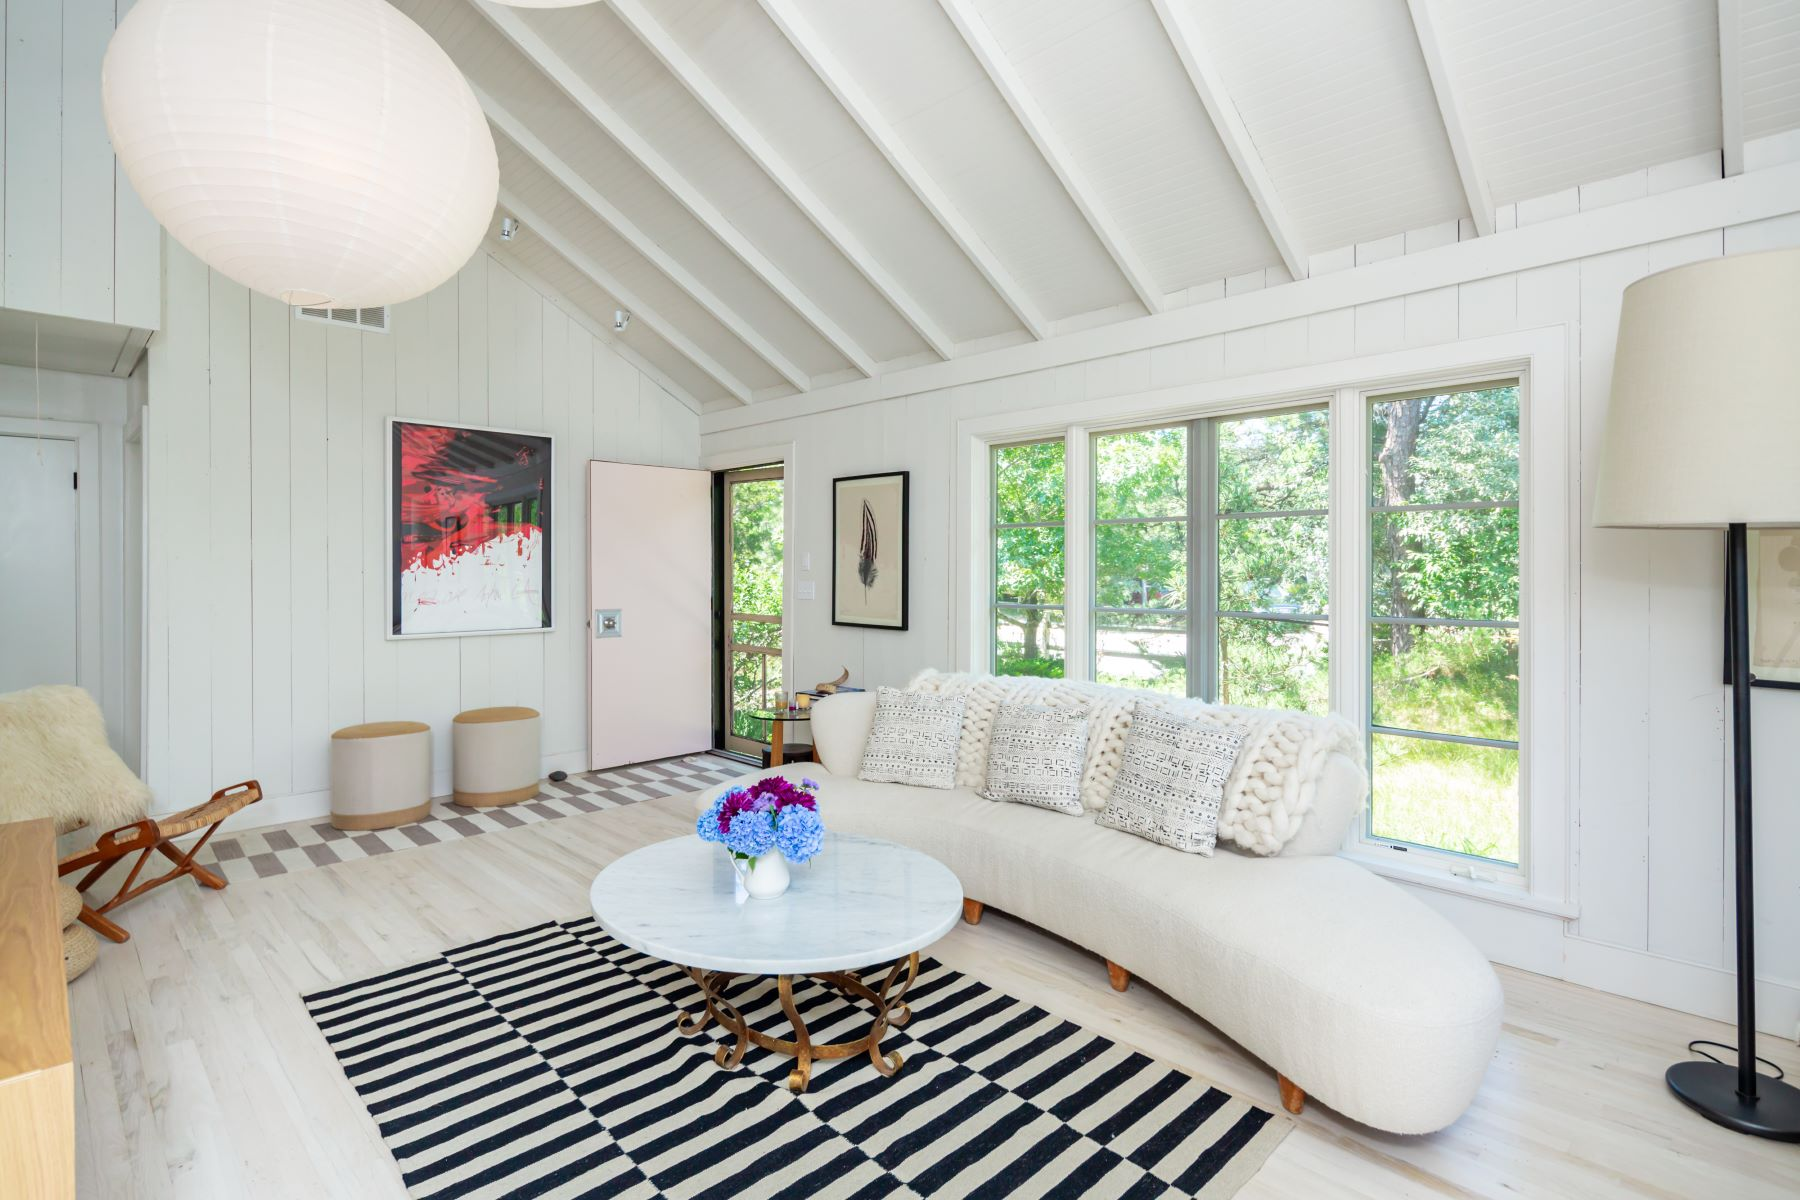 Single Family Homes for Sale at Amagansett Dunes Chic Cottage 56 Jacqueline Drive Amagansett, New York 11930 United States